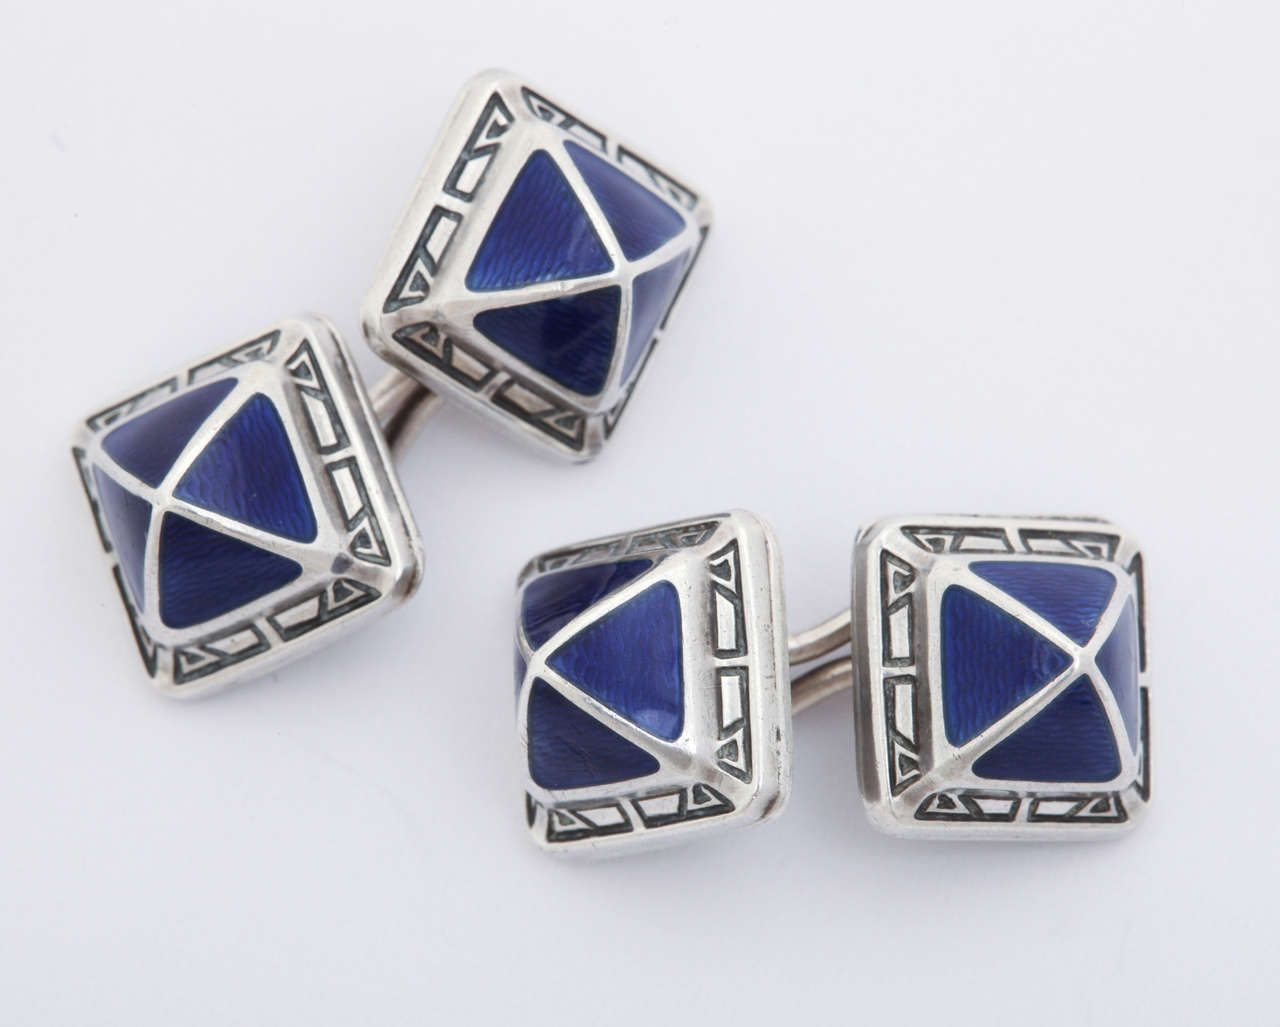 Guilloche Enamel Sterling Silver Cufflinks. Square with a divided blue pyramid and geometric silver border. Hallmarks: STERLING/ maker's mark of column wrapped around an axe. 1920-30s